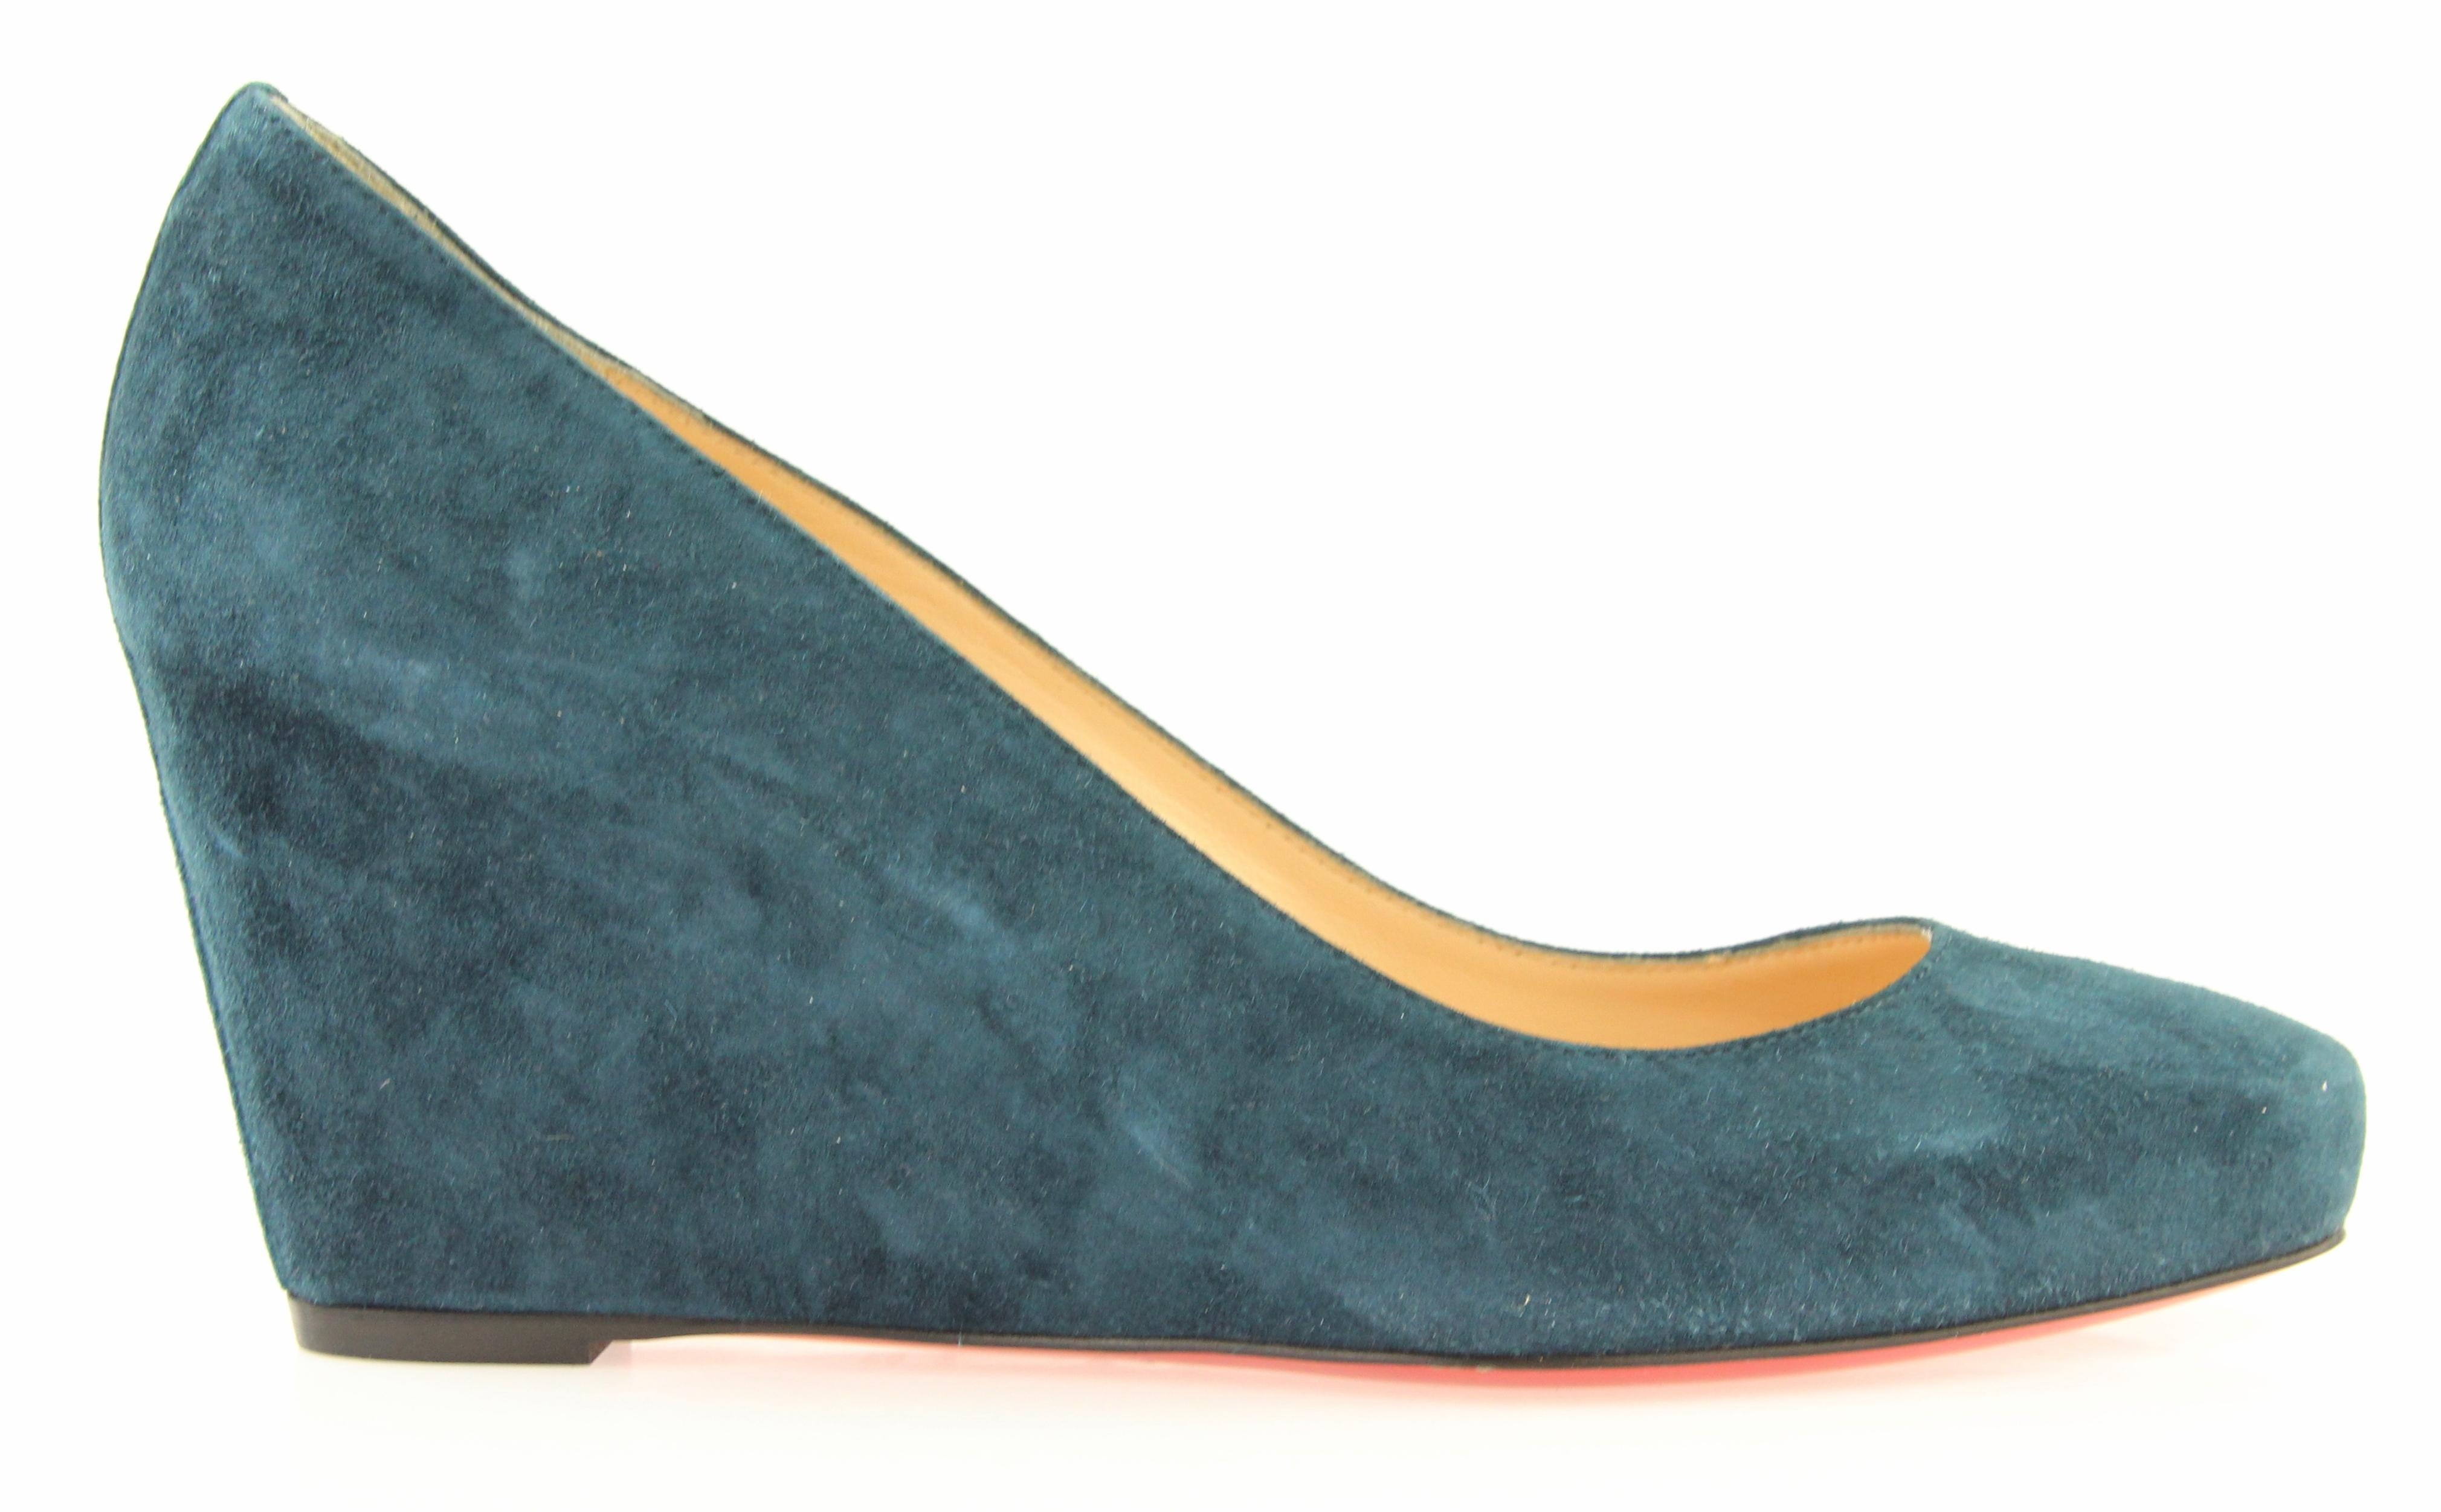 e625a2e2267d Christian Louboutin Blue Teal Teal Teal Melissa Wedges Size EU 38.5 (Approx.  US 8.5